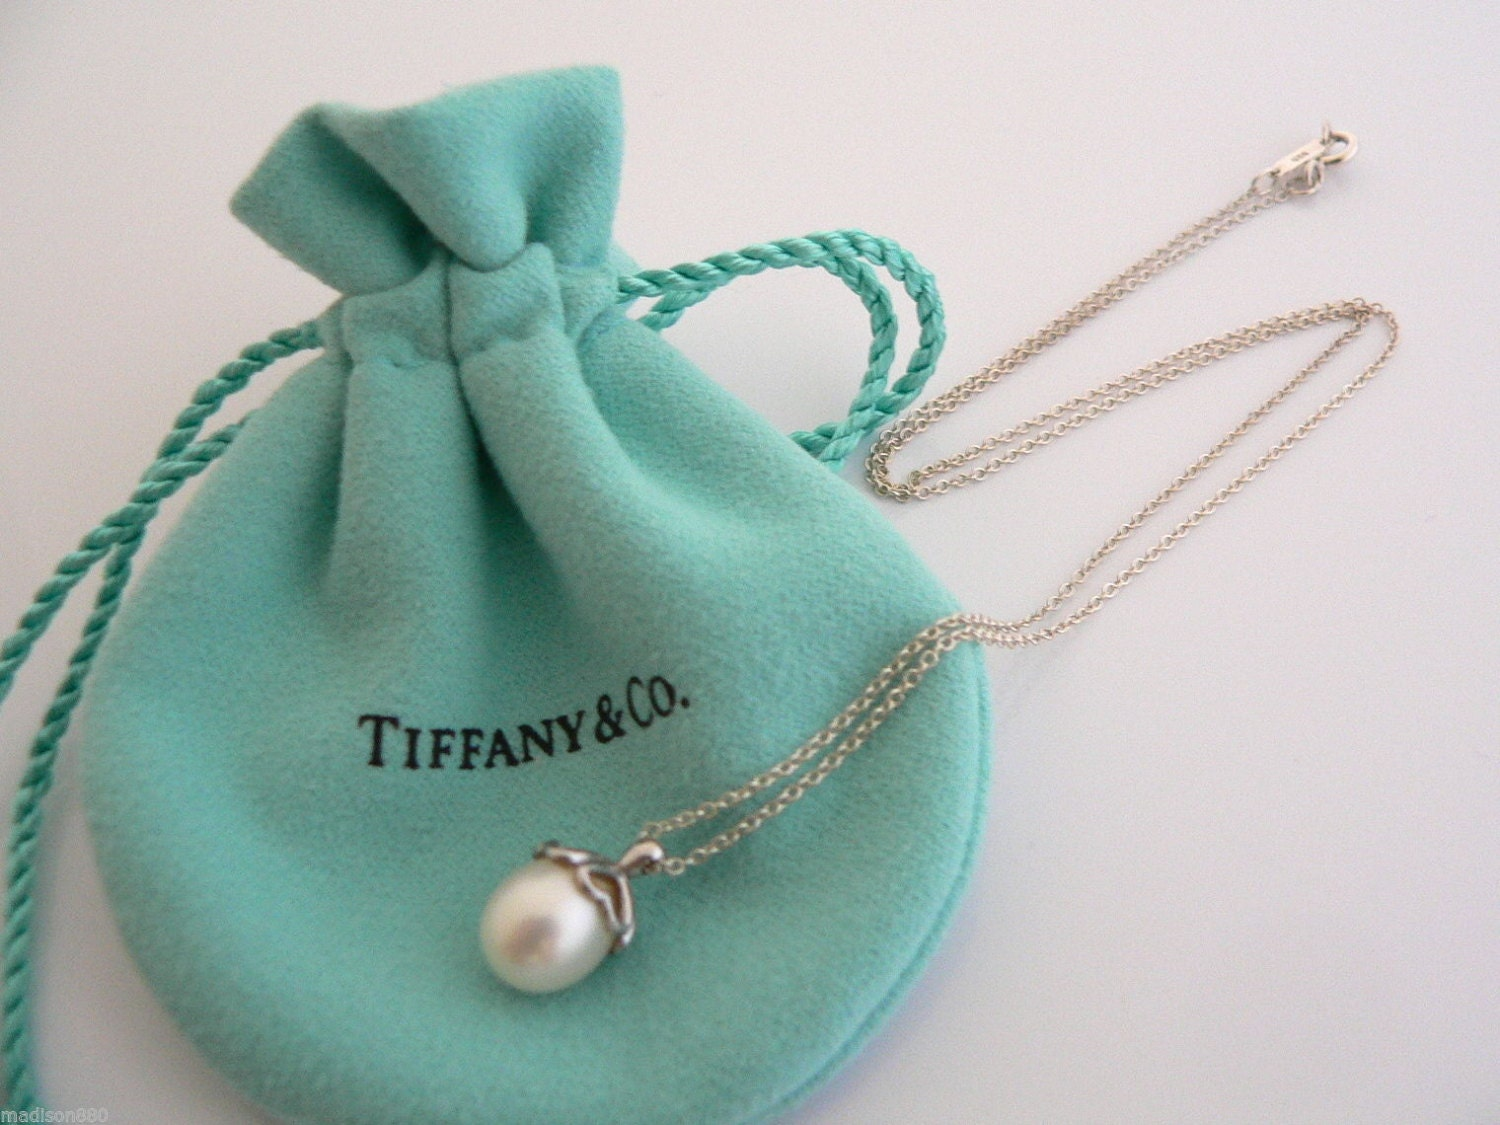 Tiffany co sterling silver heart cap pearl necklace pendant zoom audiocablefo light Images